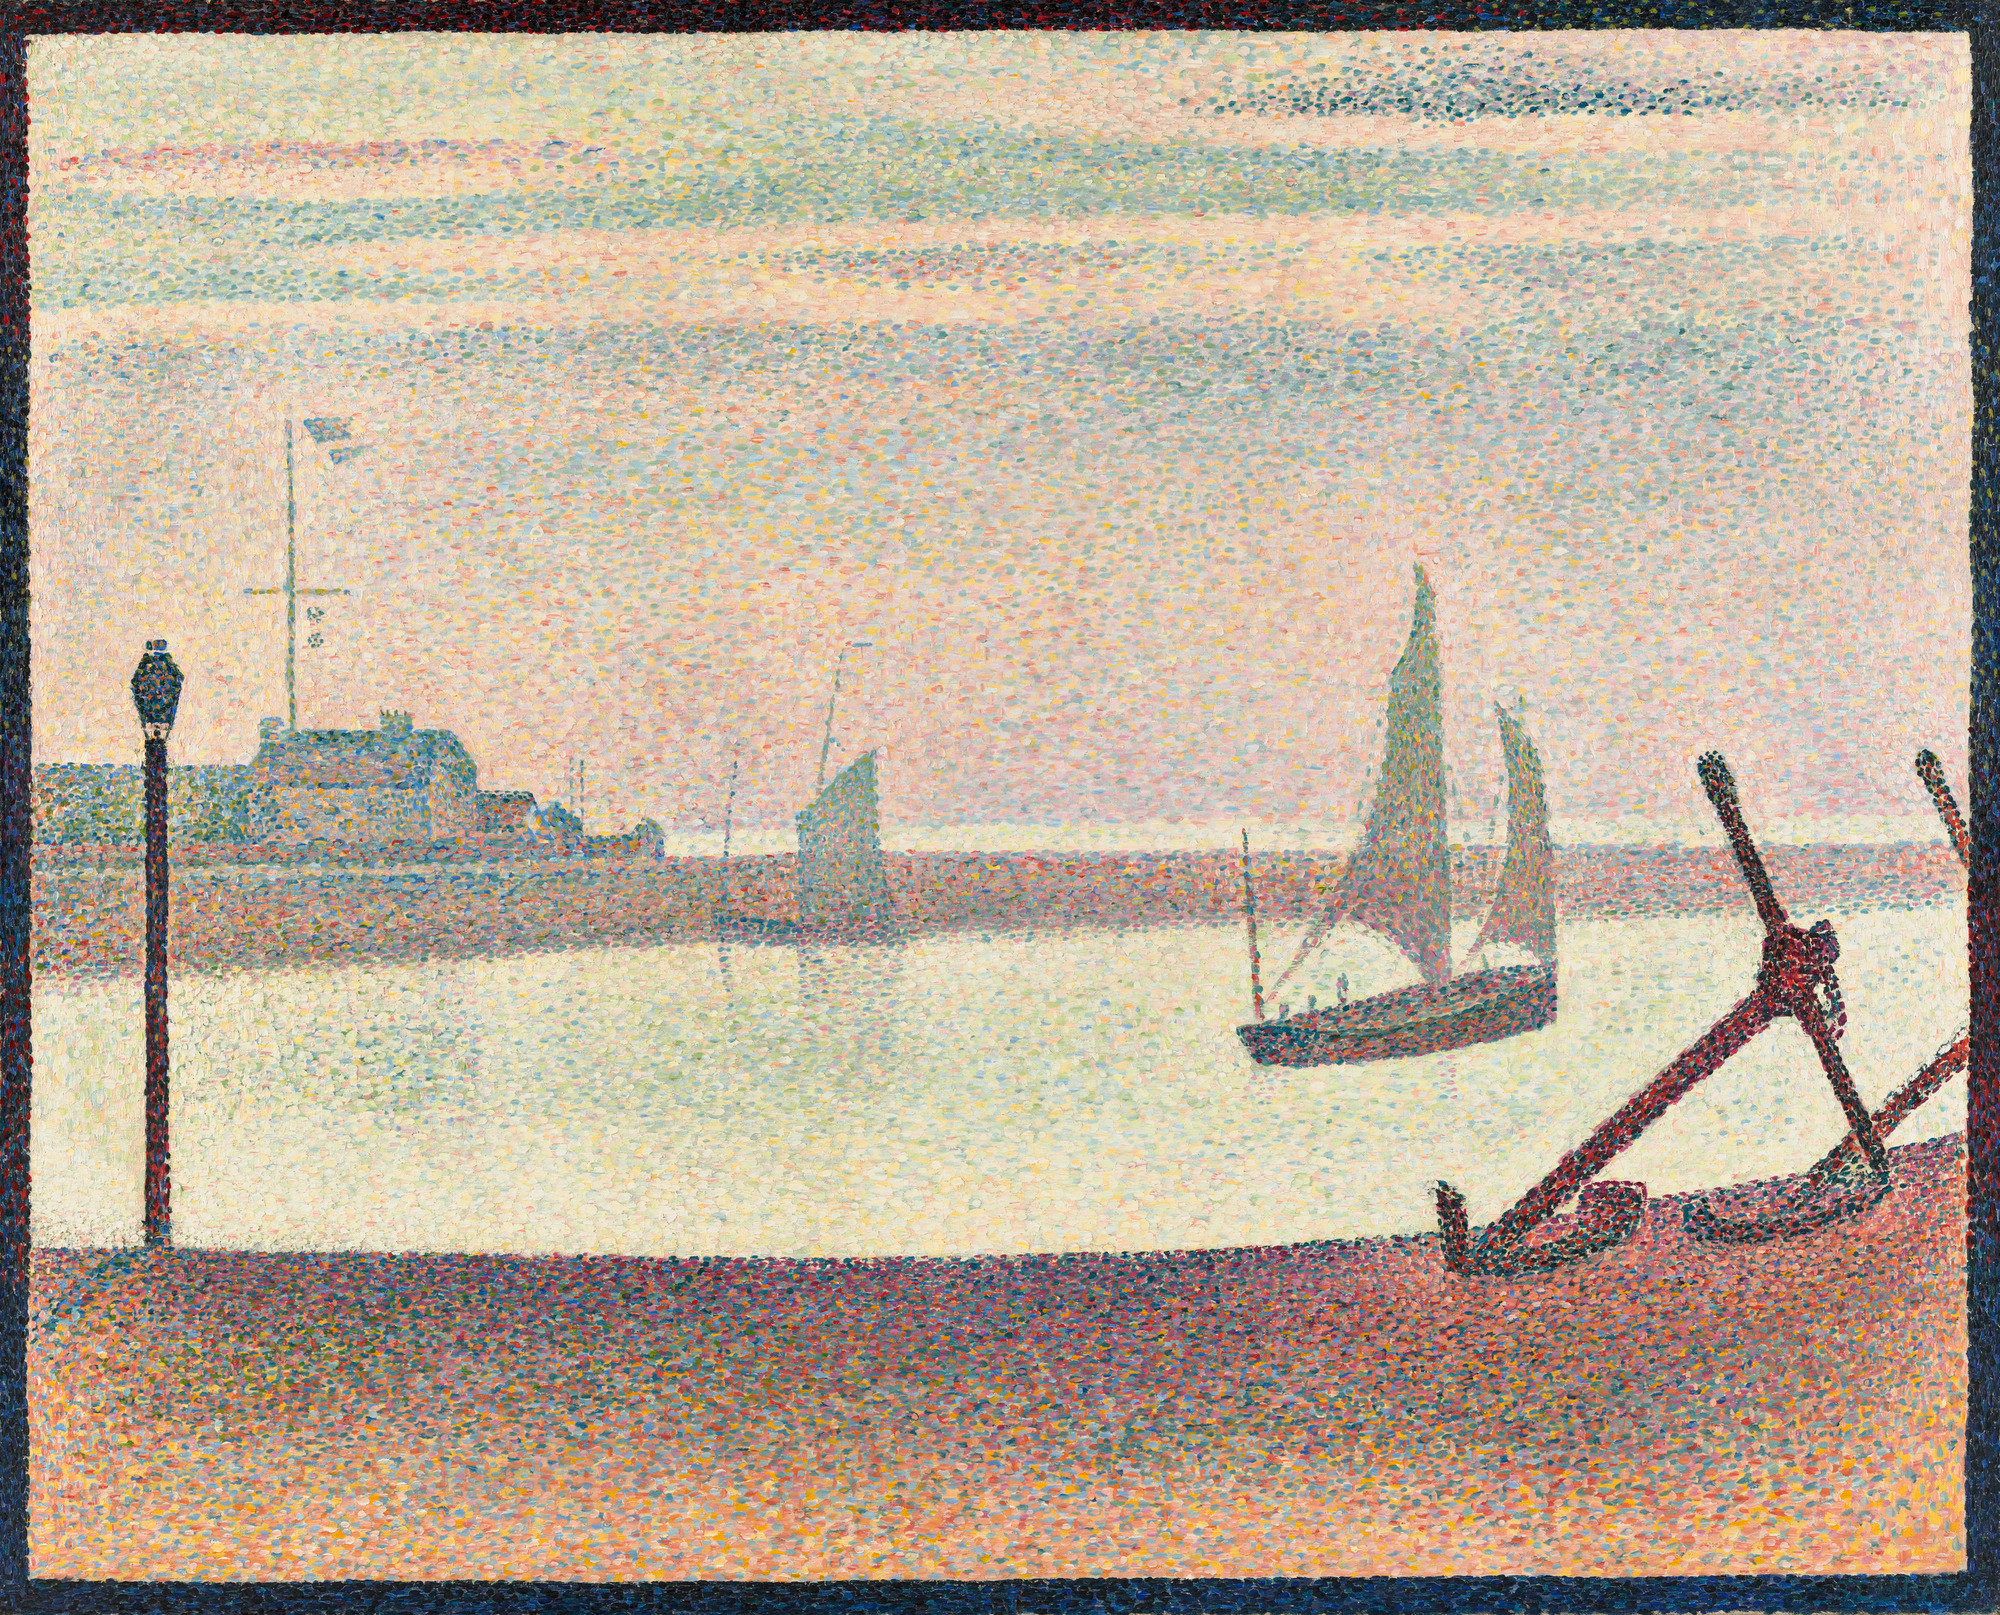 "Georges-Pierre Seurat. The Channel at Gravelines, Evening, Marine avec des ancres. 1890. Oil on canvas, 25 3/4 x 32 1/4"" (65.4 x 81.9 cm). Gift of Mr. and Mrs. William A. M. Burden"